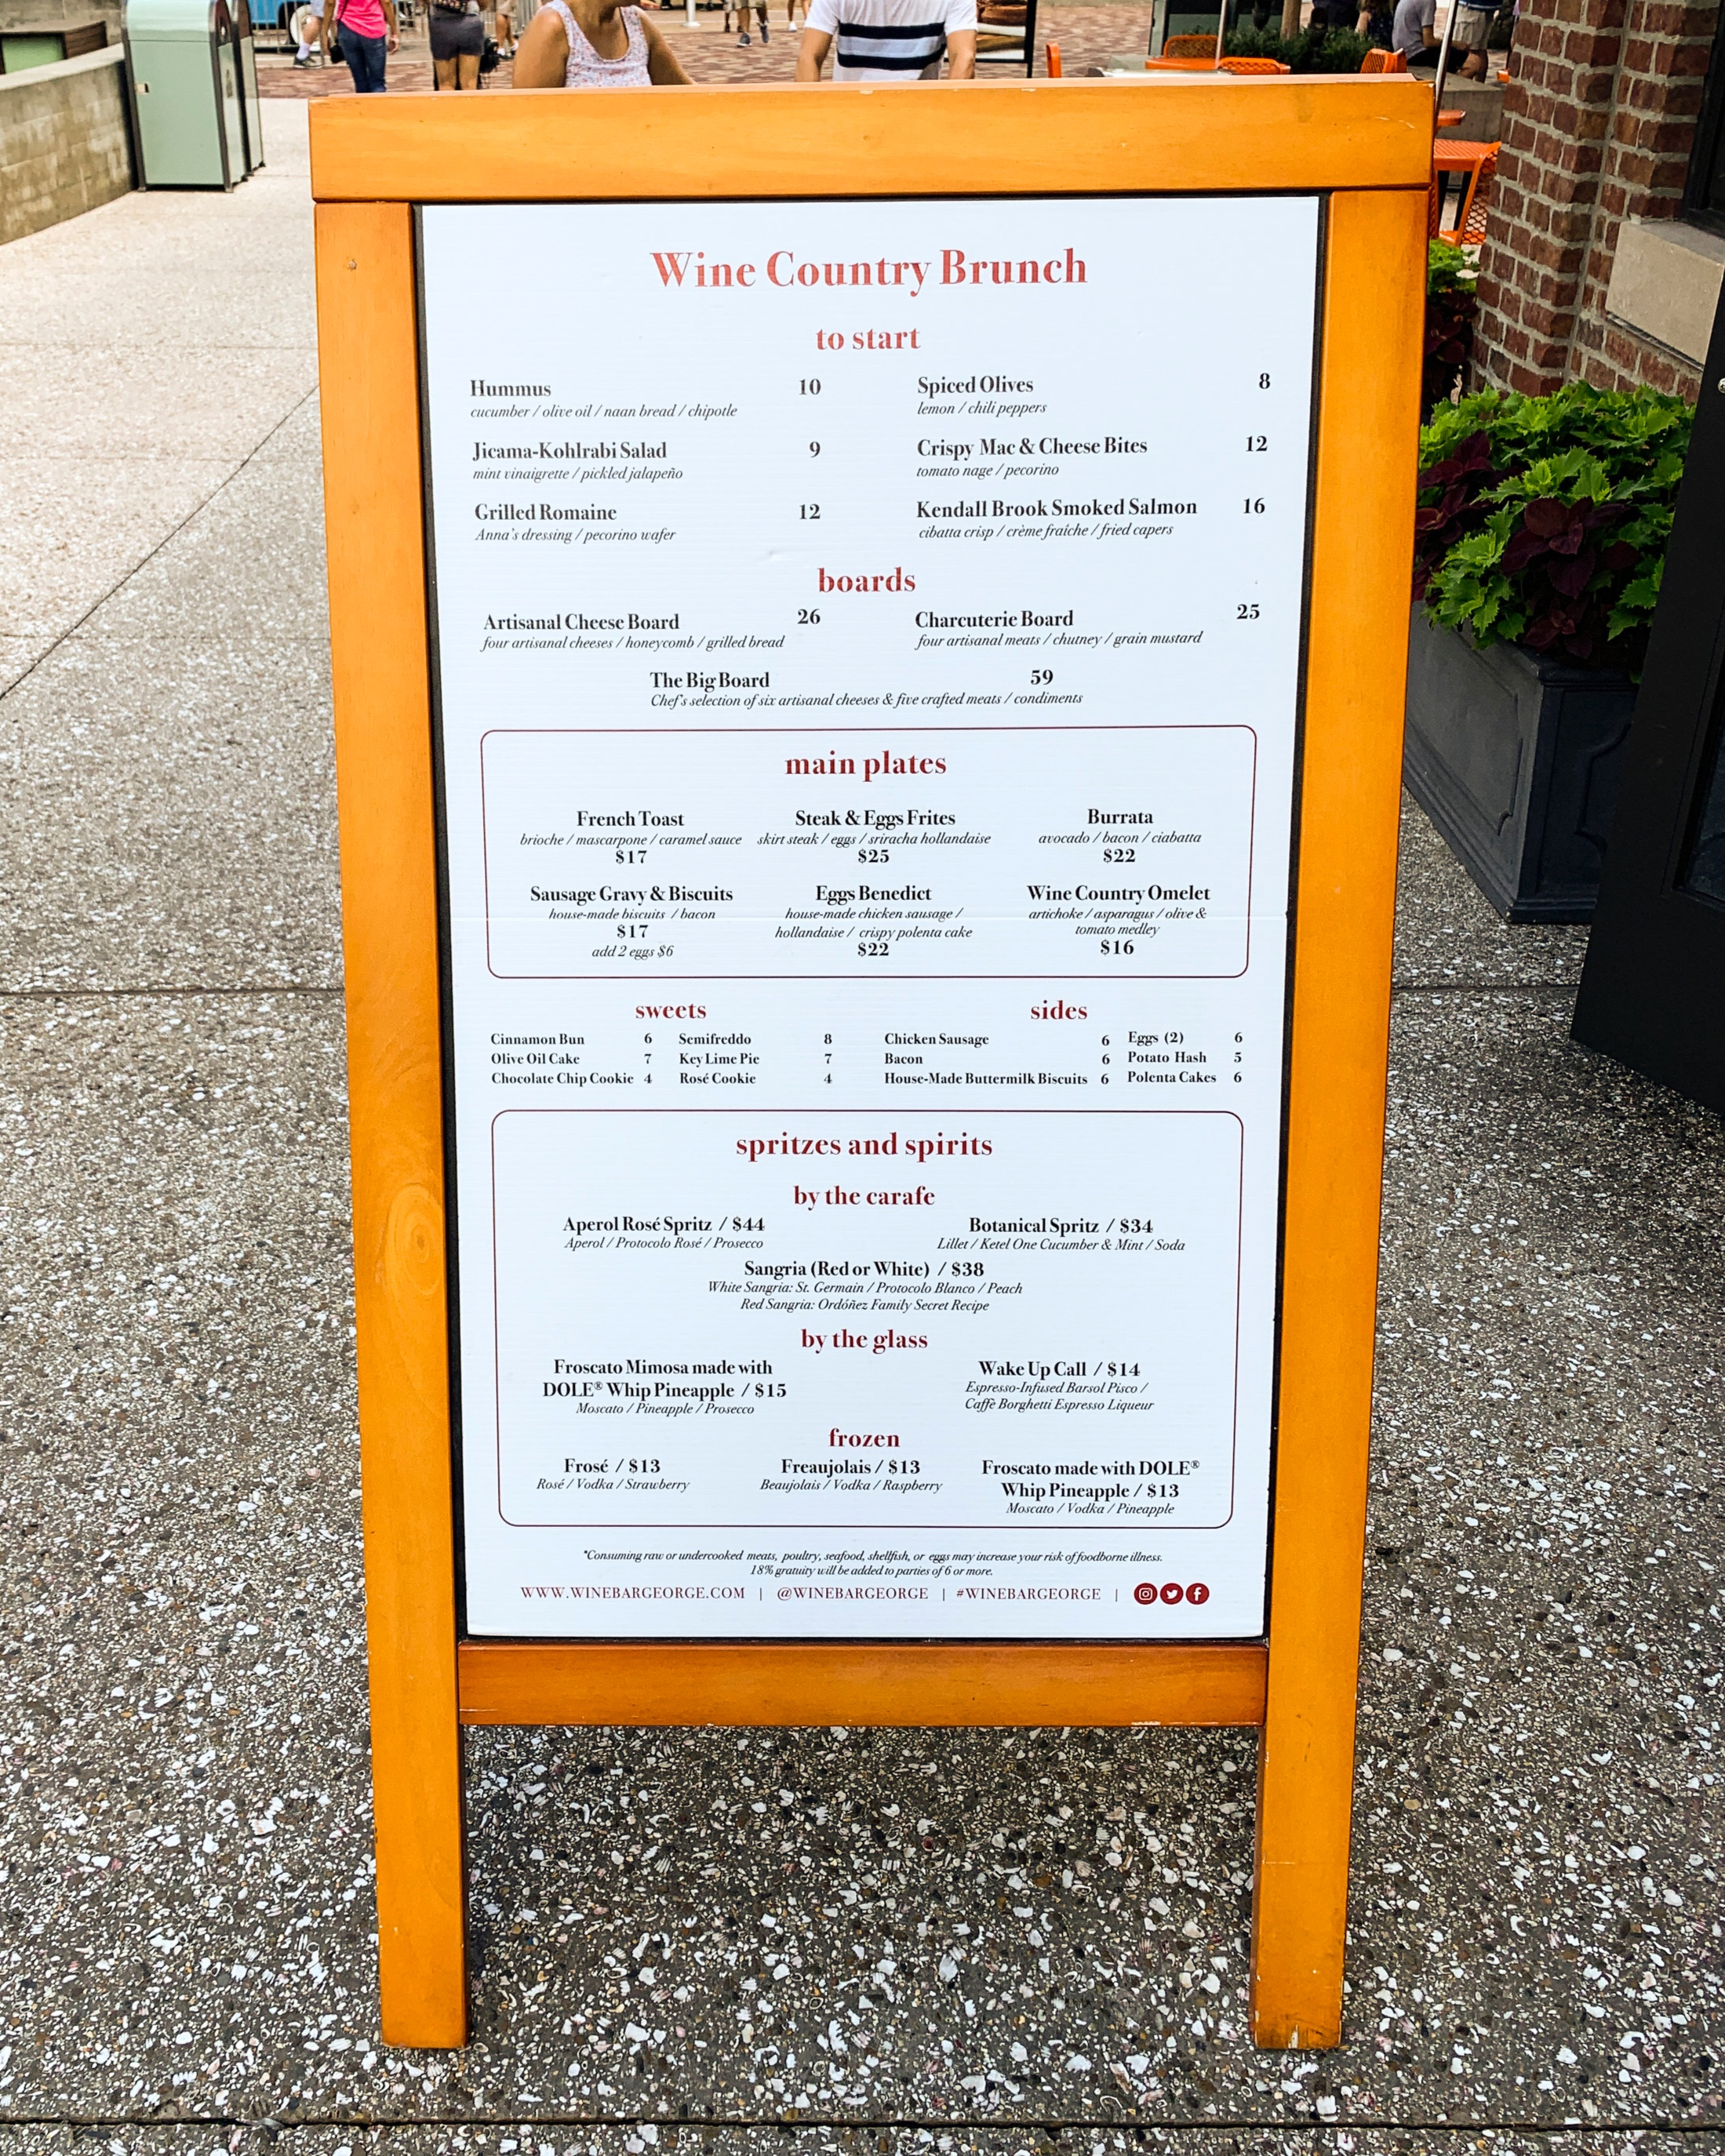 A view of the whole brunch menu.